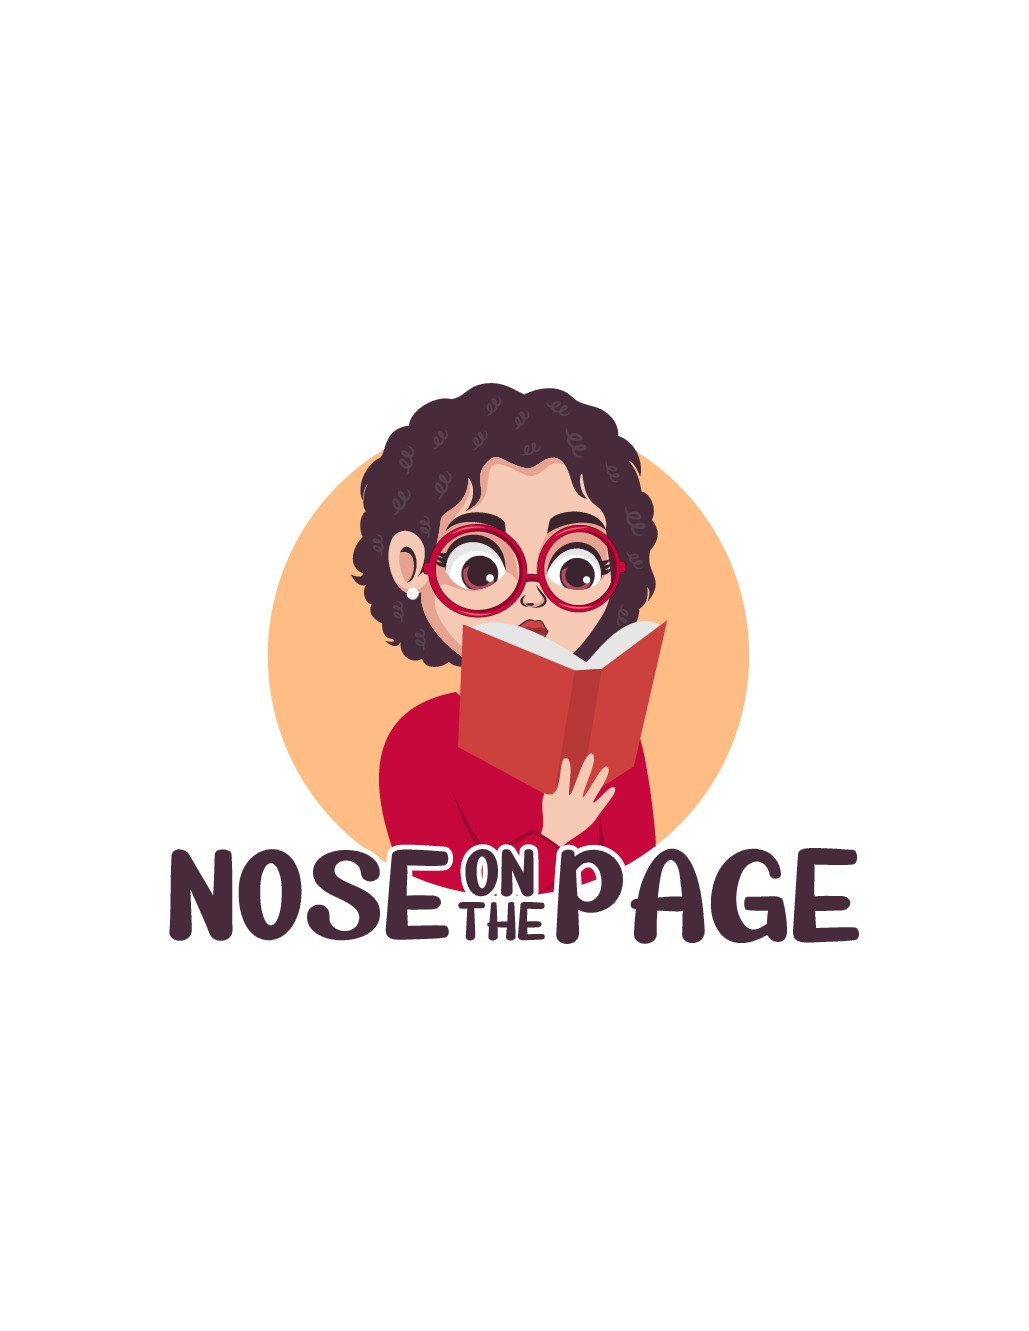 Fun, quirky logo to appeal to nerdy women